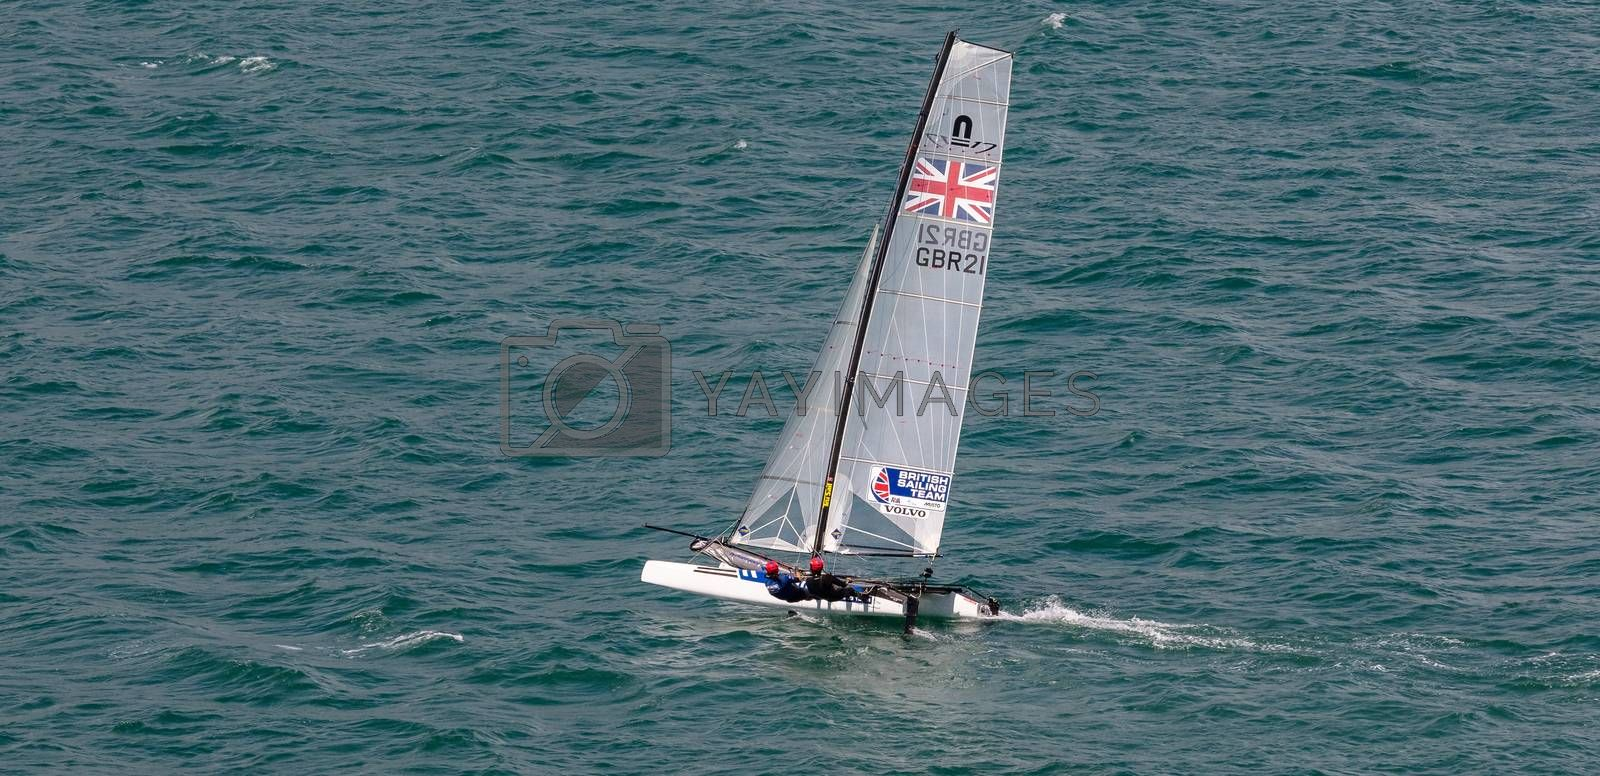 Portland harbour, United Kingdom - July 2, 2020: High Angle aerial panoramic shot of racing catamaran of the British Sailing Team. Two sailors on it wearing red helmets, British flag on the sails.